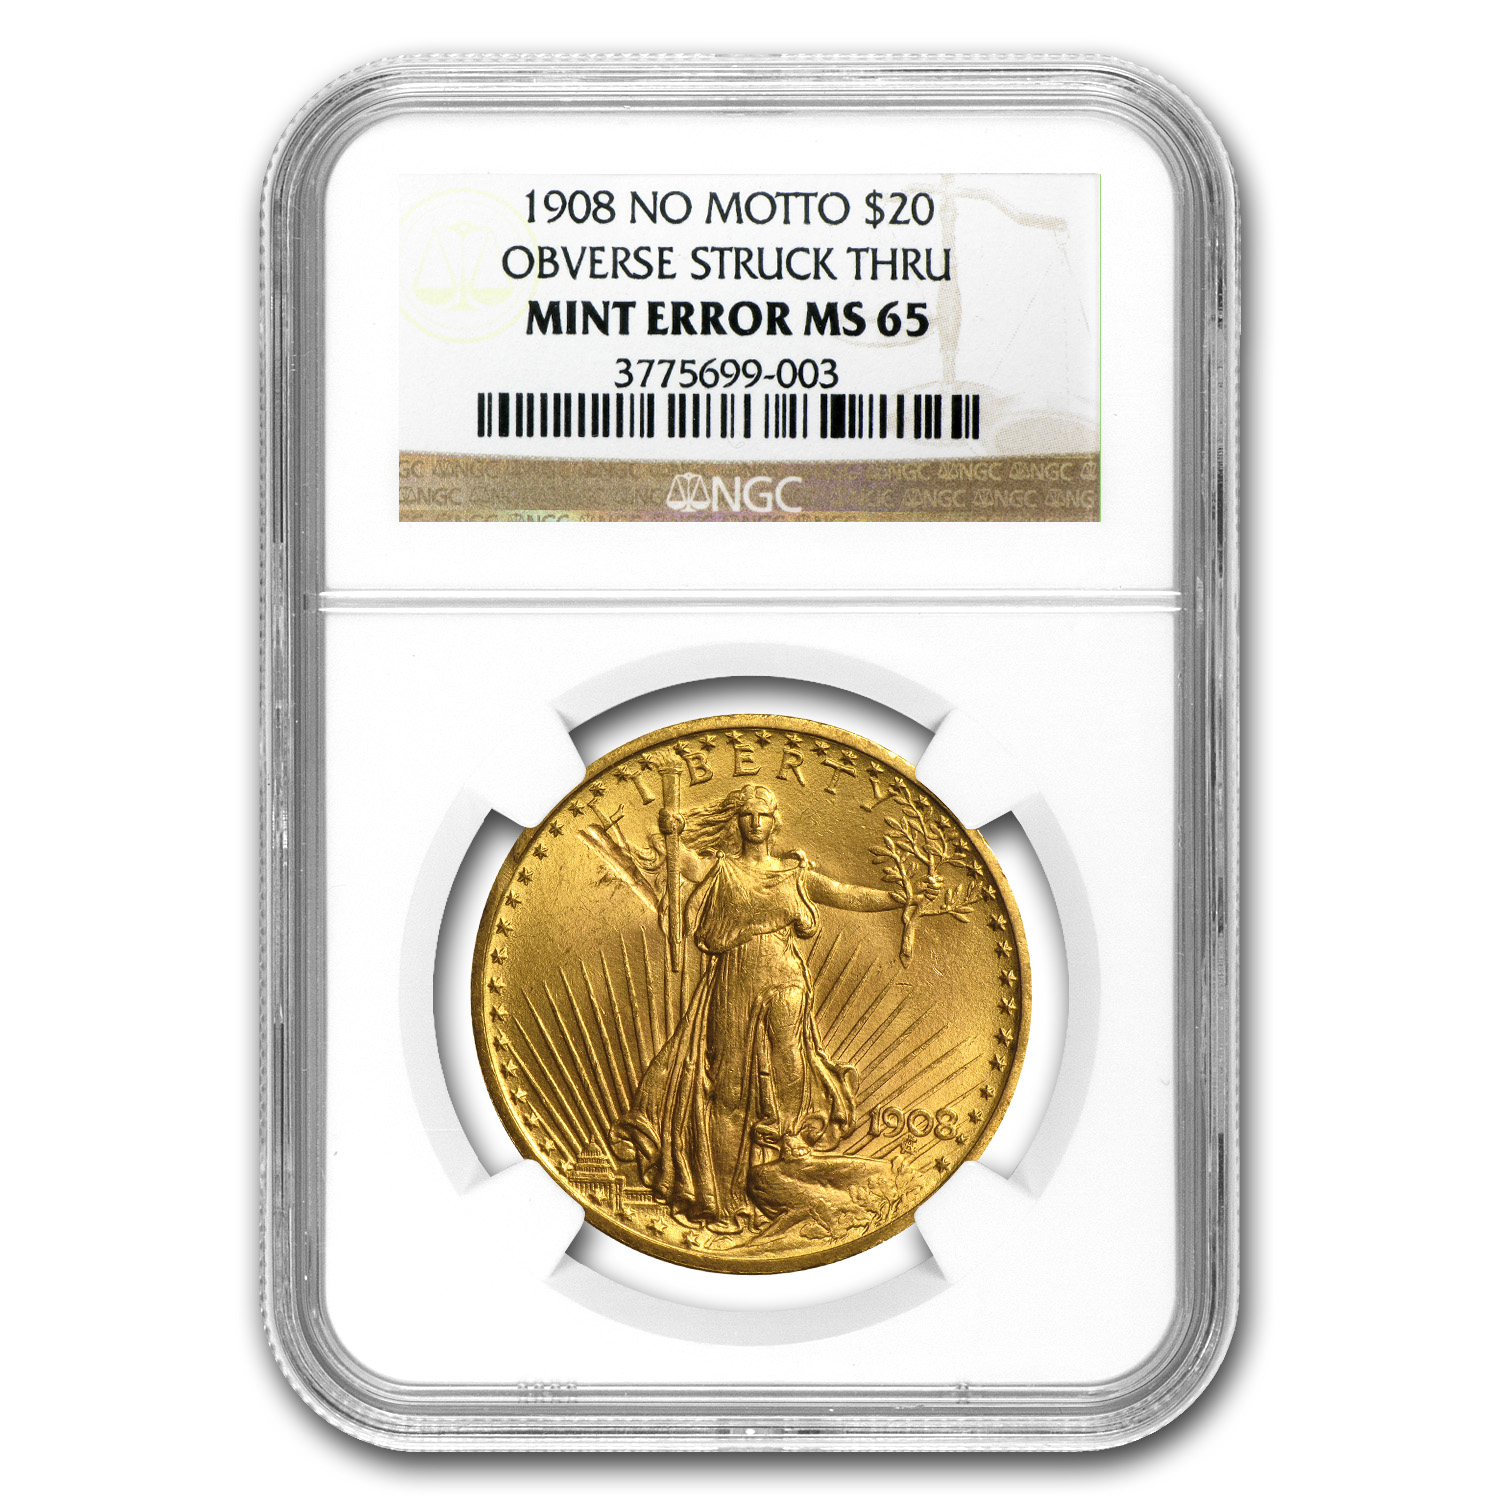 1908 $20 St. Gaudens Gold No Motto MS-65 NGC (Obv Strike Thru)